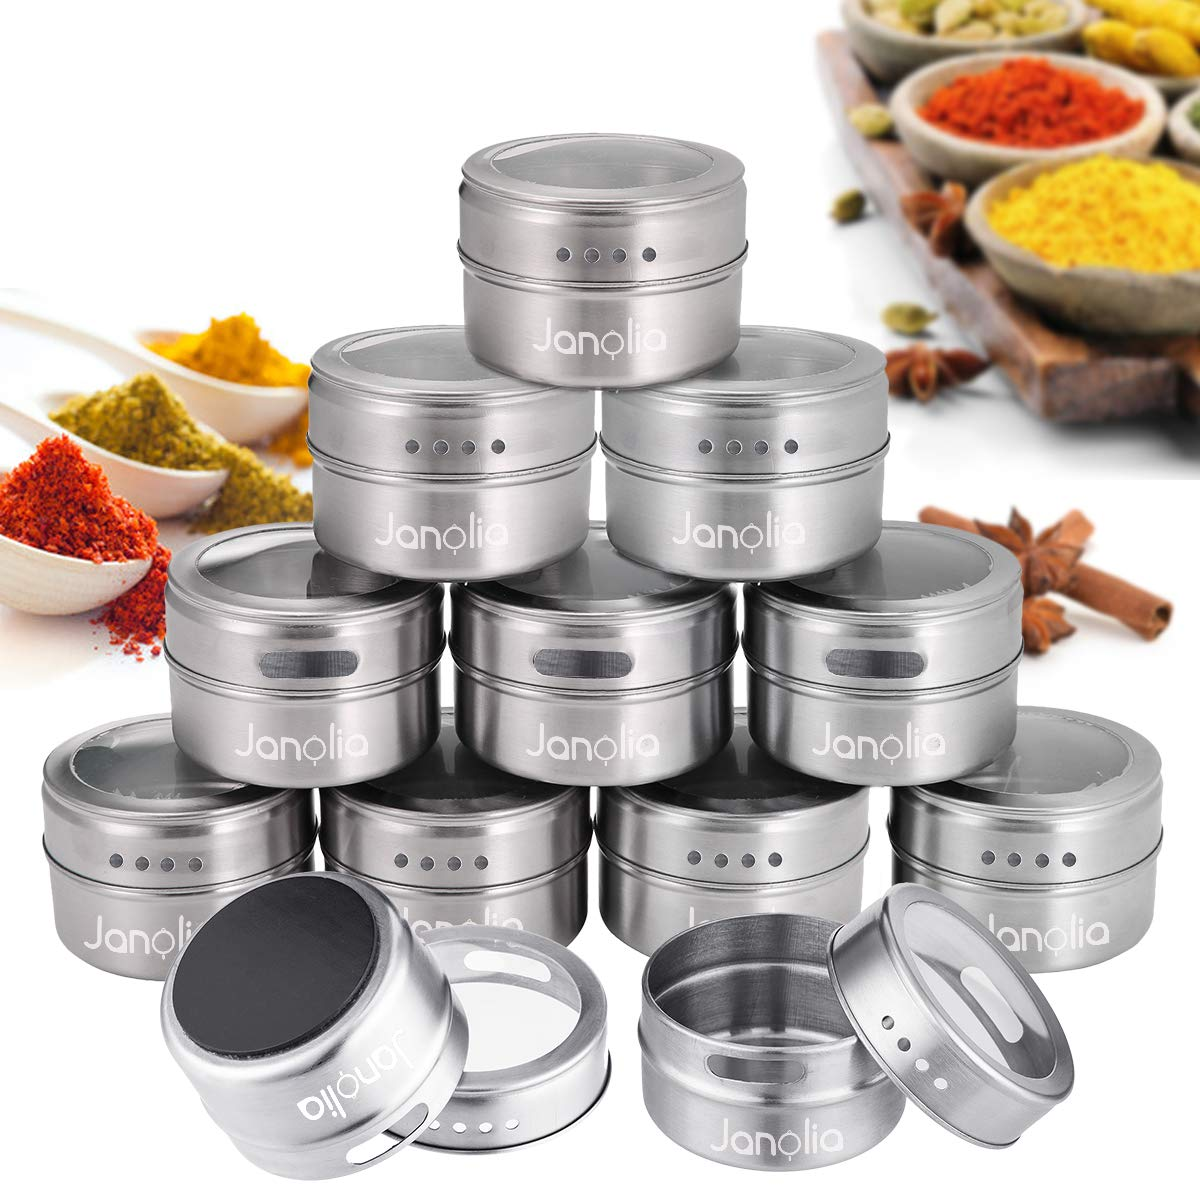 Janolia Magnetic Spice Tins, 12 PCS Round Spice Containers Storage Boxes, Clear Top, Swift Pour, Magnetically Stick on Refrigerator